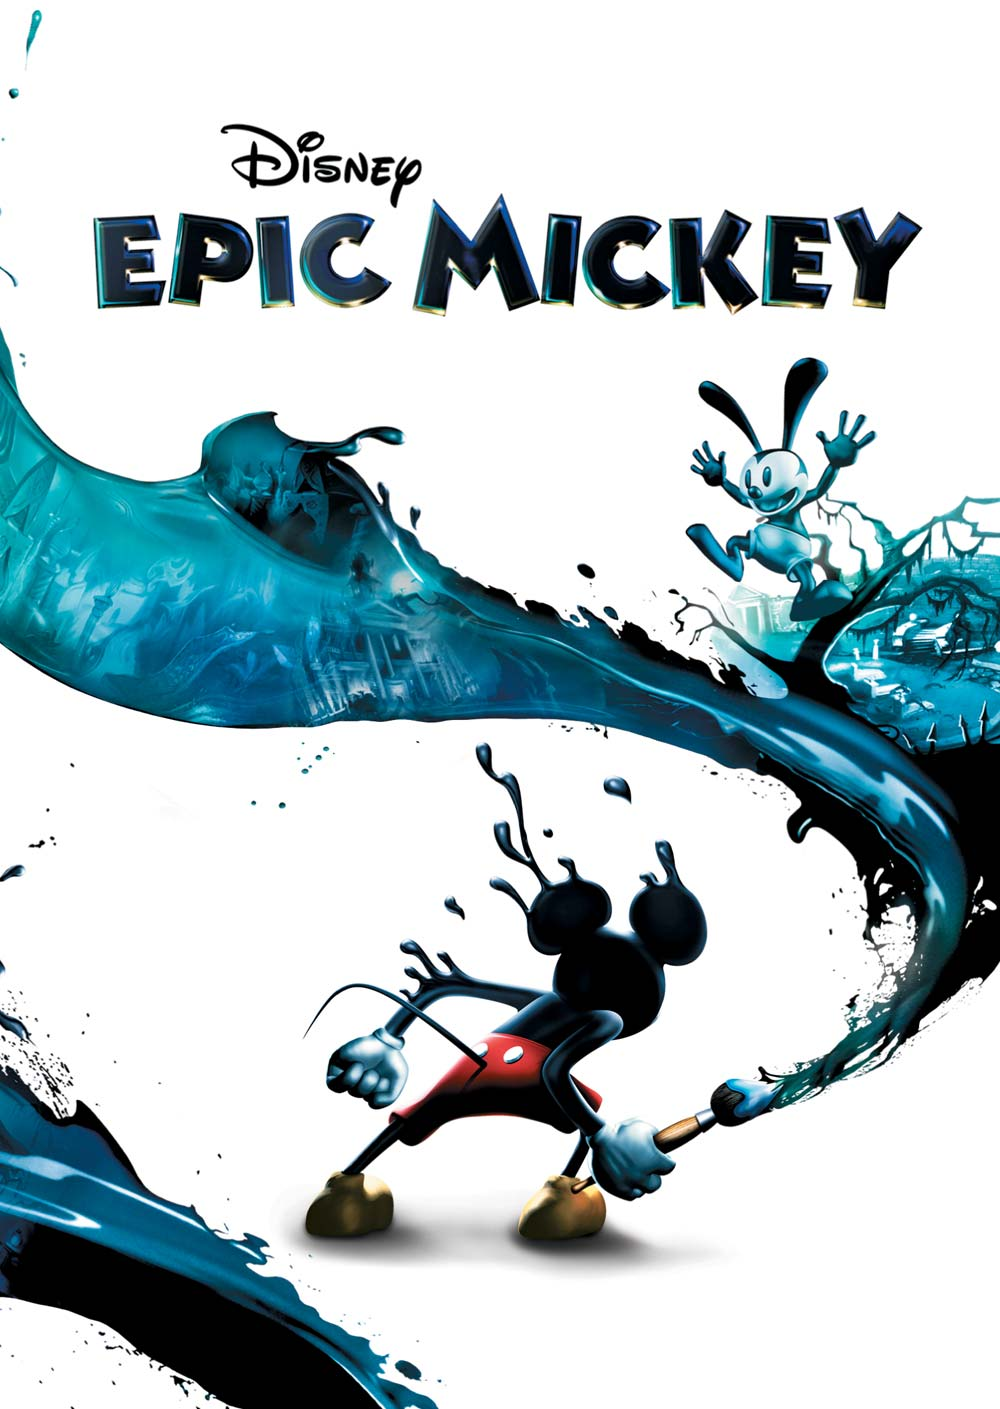 Disney Epic Mickey – Wii